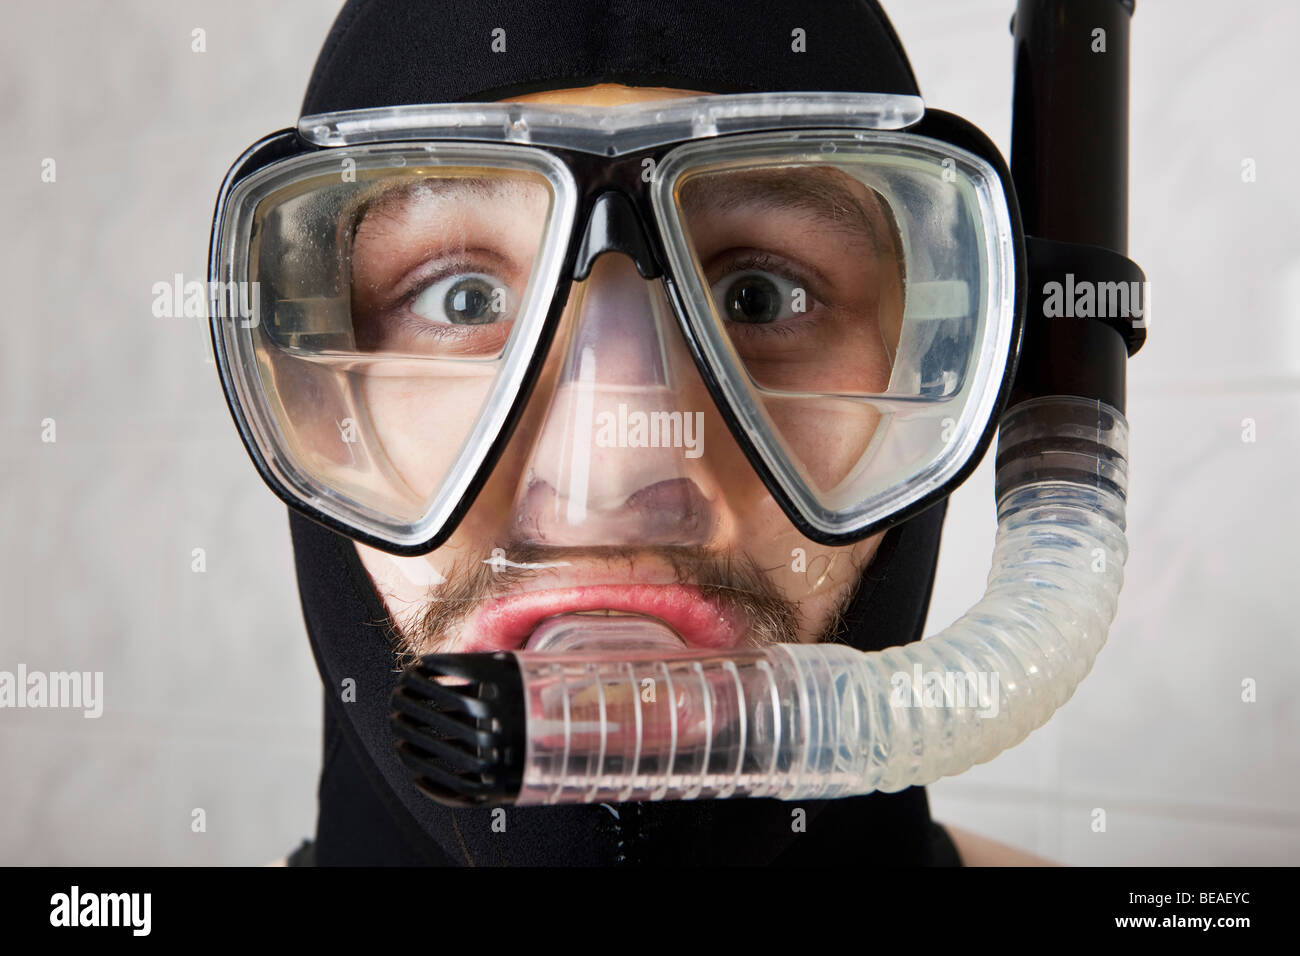 A wearing a scuba mask half full of water - Stock Image